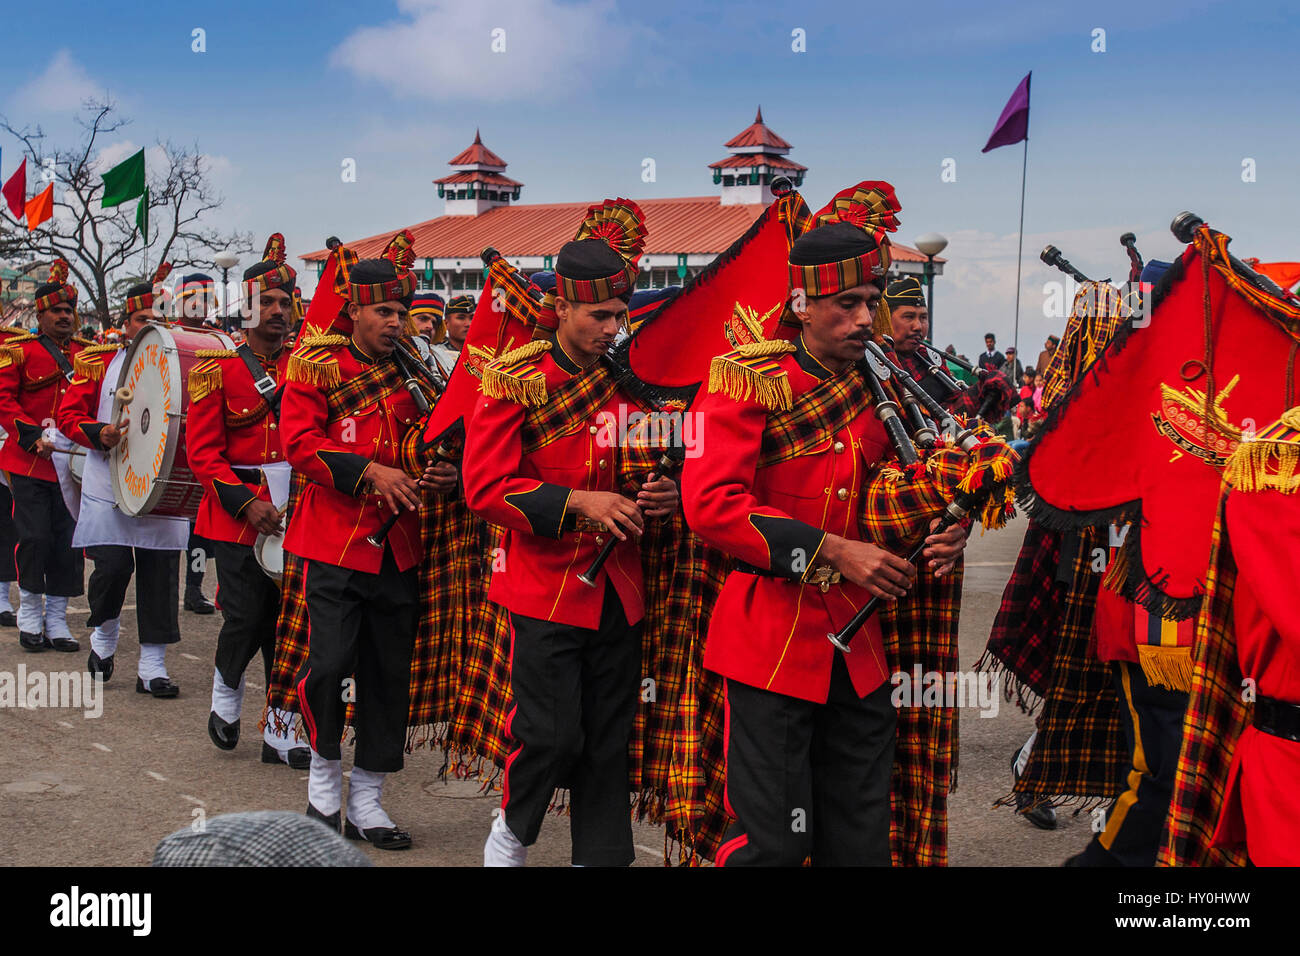 Musical band playing on ridge, shimla, himachal pradesh, india, asia - Stock Image